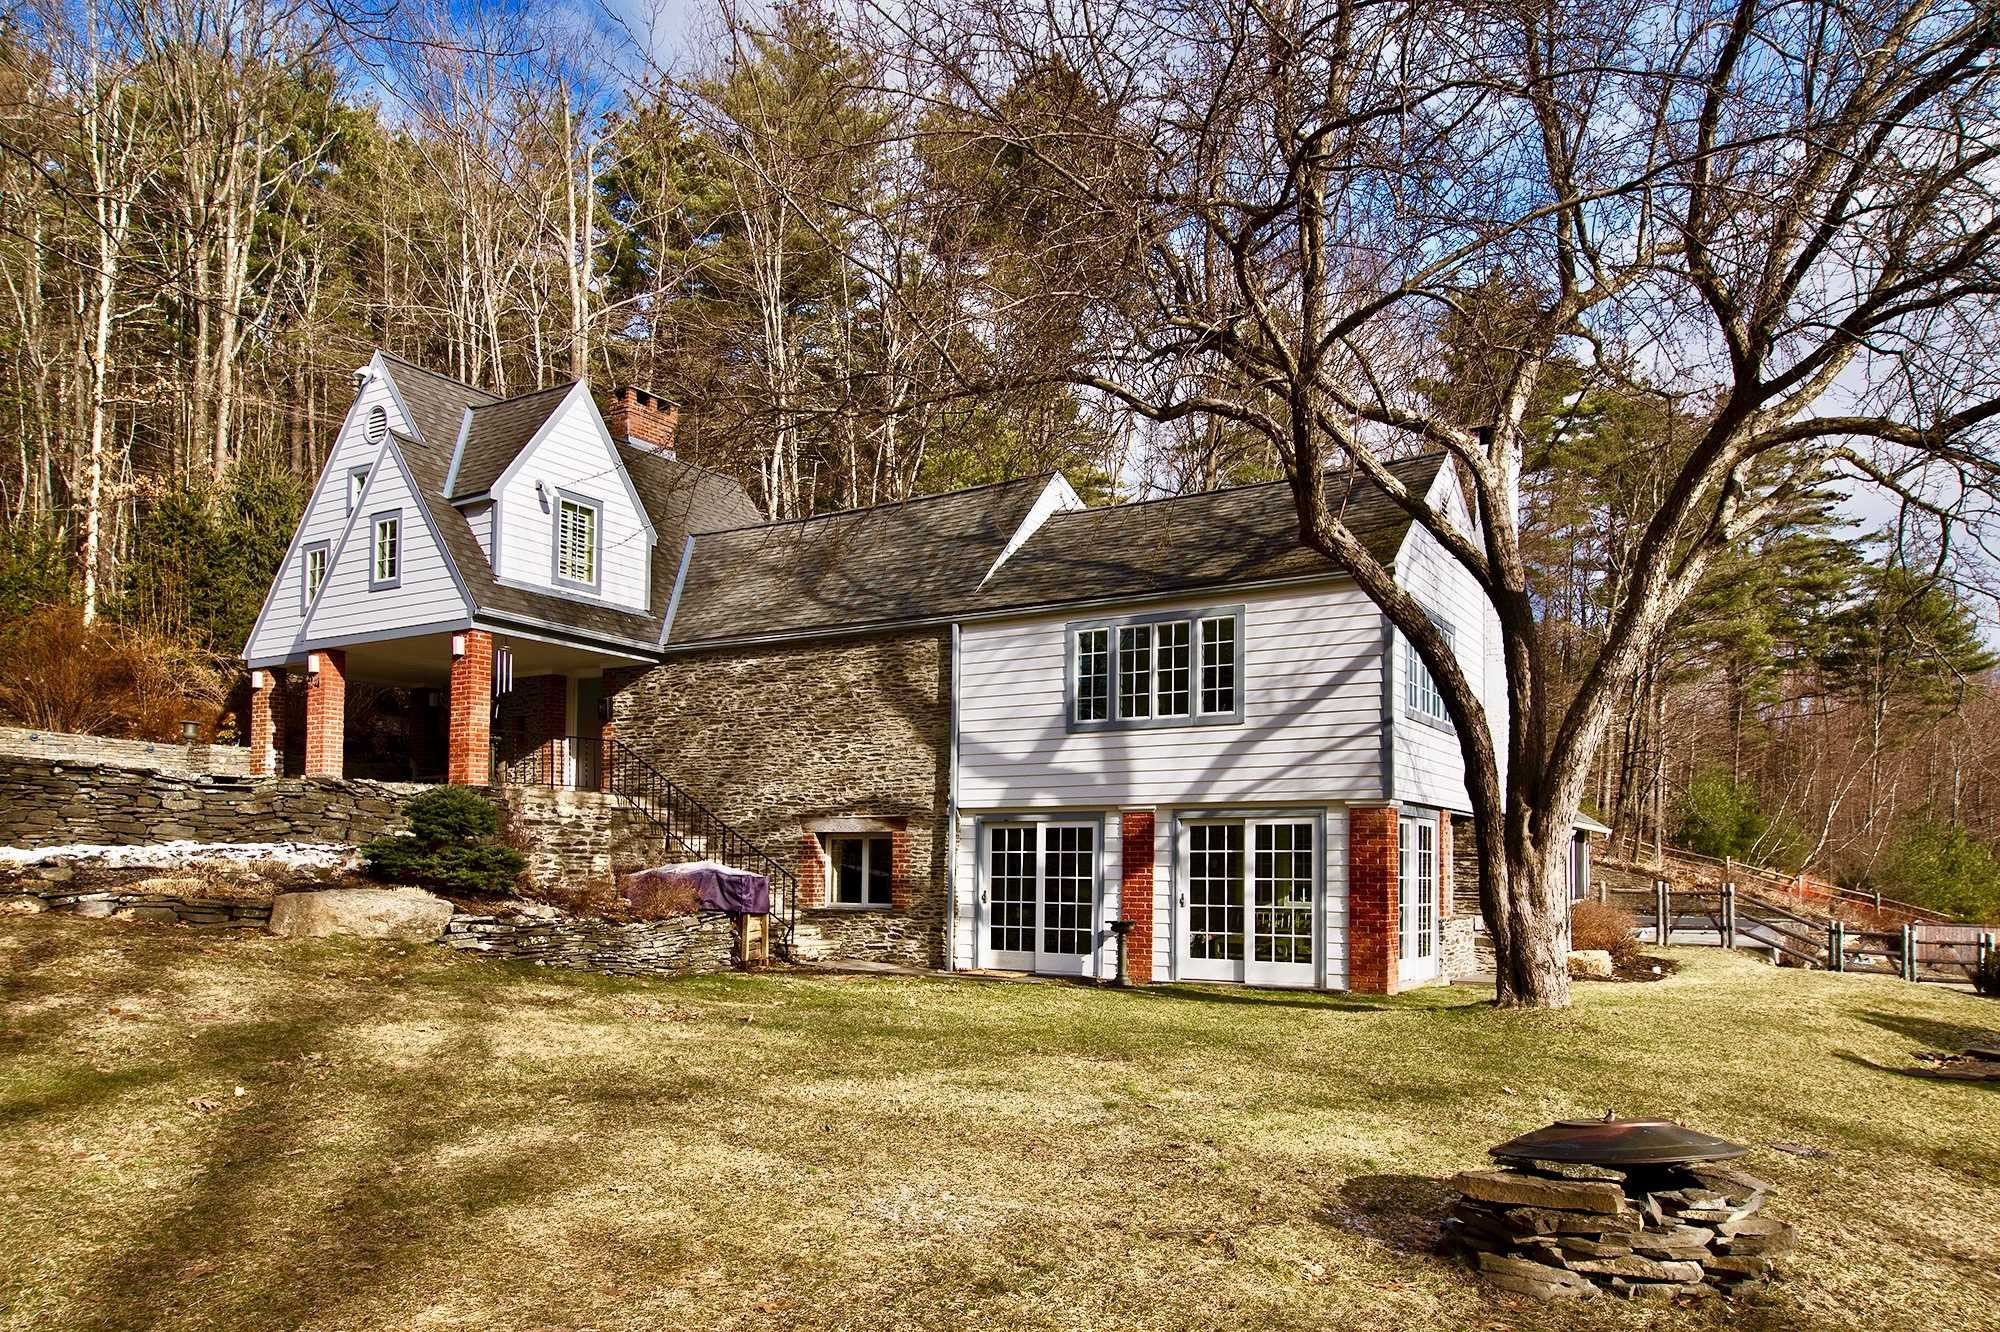 Single Family Home for Sale at 24 PINEY WOODS ROAD 24 PINEY WOODS ROAD Woodstock, New York 12498 United States